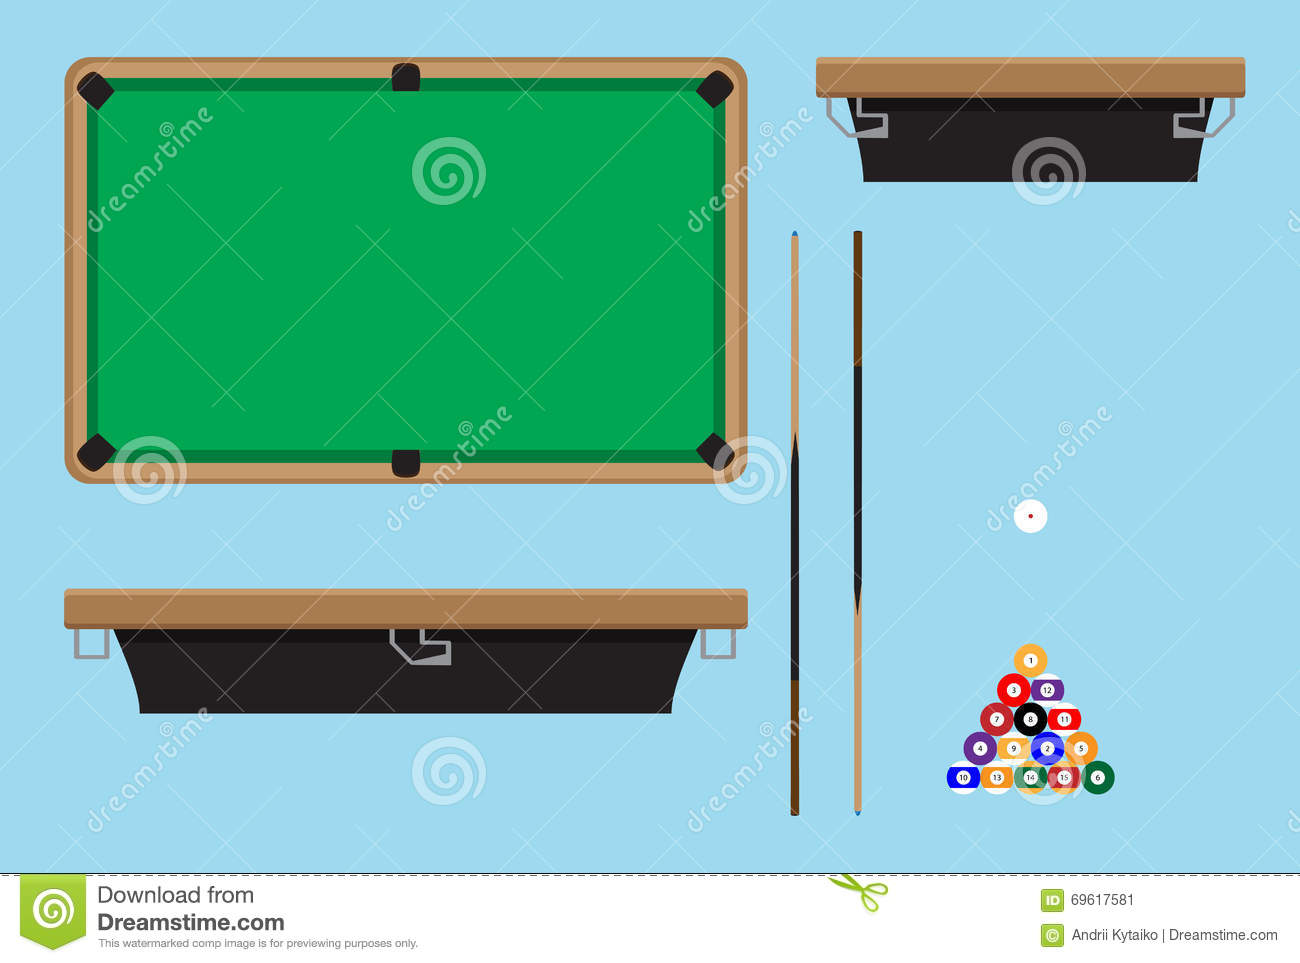 Royalty Free Vector. Download Pool Table Top ...